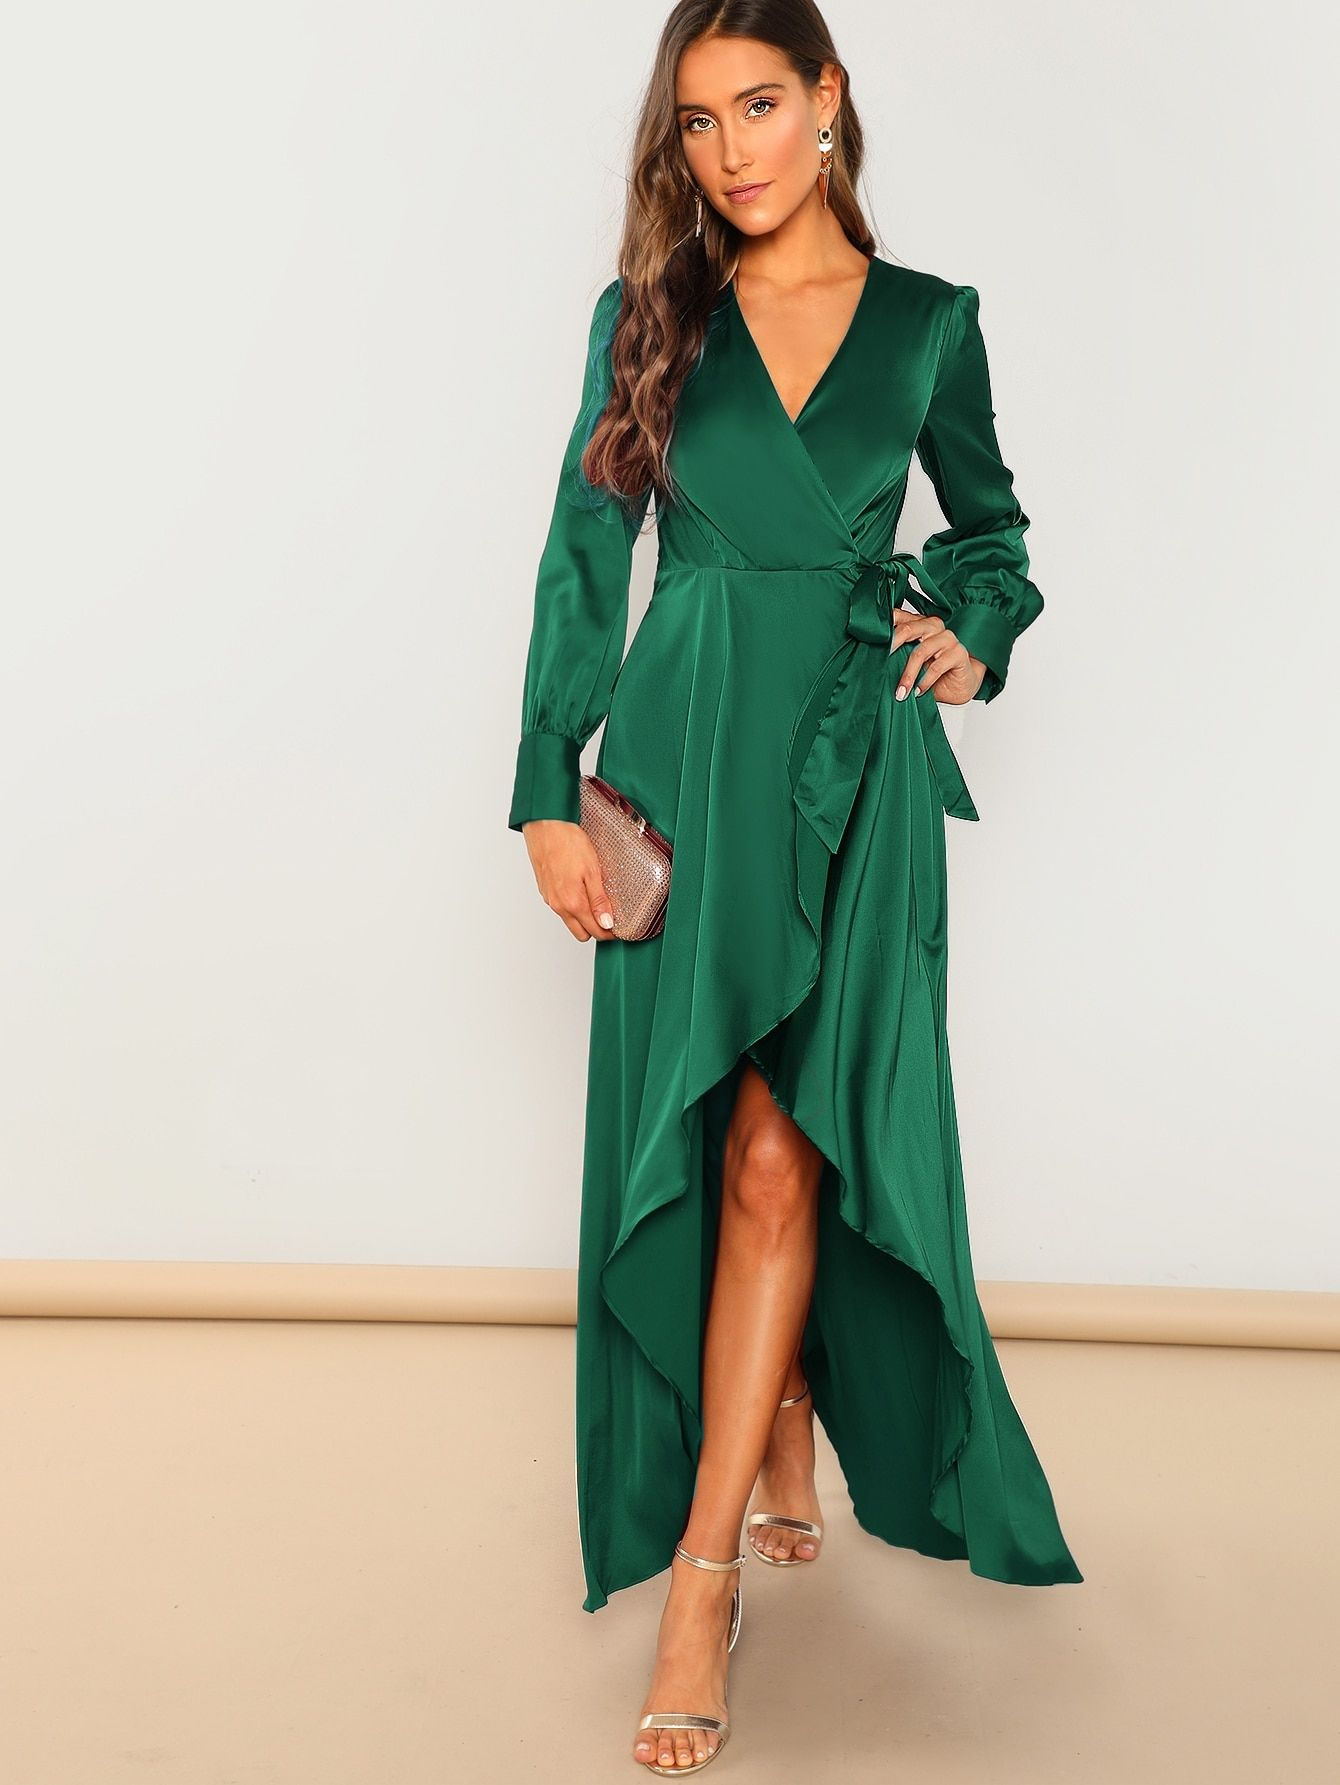 d08c3ebe902a Elegant A Line Wrap and Belted Plain Fit and Flare Wrap V Neck Long Sleeve  High Waist Green Maxi Length Solid Surplice Wrap Knot Dress